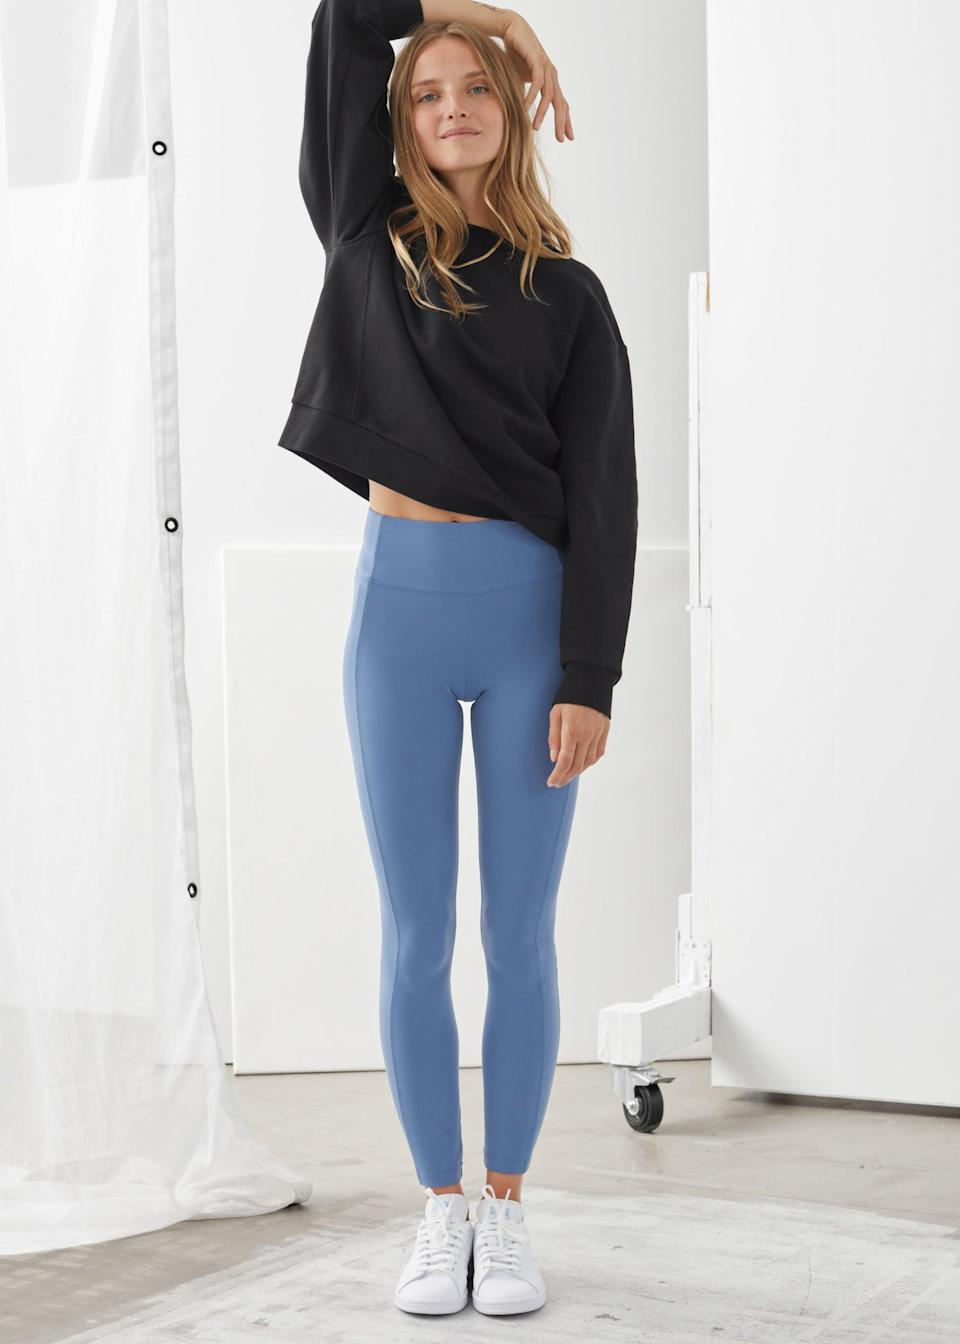 "<br><br><strong>& Other Stories</strong> Quick-Dry Yoga Tights, $, available at <a href=""https://go.skimresources.com/?id=30283X879131&url=https%3A%2F%2Fwww.stories.com%2Fen_usd%2Fclothing%2Ftrousers%2Fslim-fit-trousers%2Fproduct.quick-dry-yoga-tights-blue.0848275003.html"" rel=""nofollow noopener"" target=""_blank"" data-ylk=""slk:& Other Stories"" class=""link rapid-noclick-resp"">& Other Stories</a>"